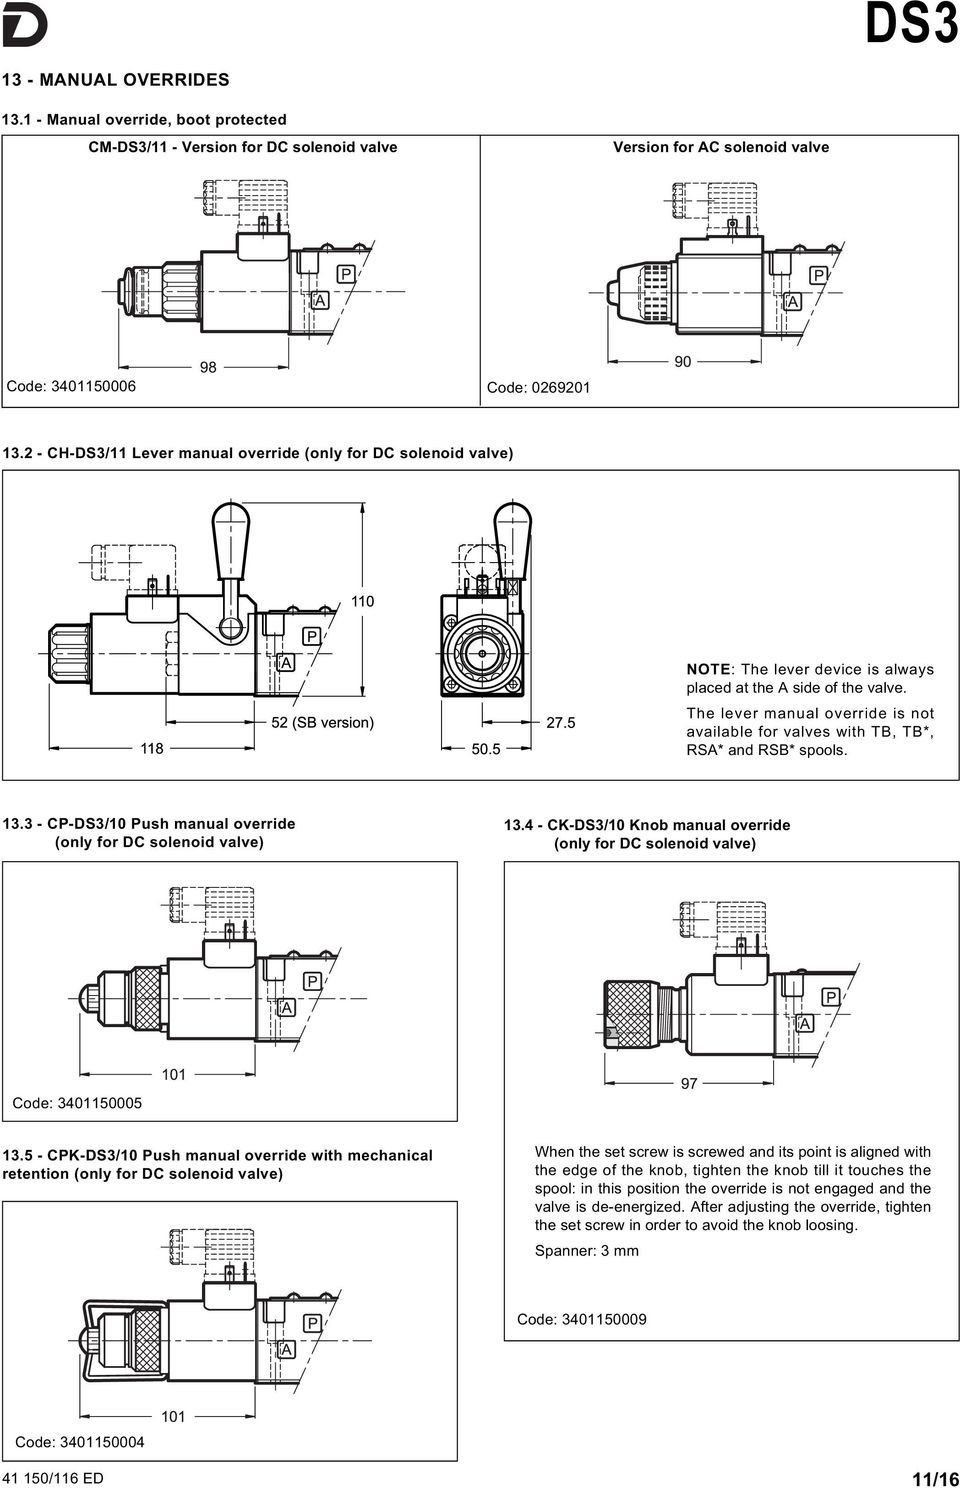 The lever manual override is not available for valves with TB, TB*, RSA* and RSB* spools. 13.3 - CP-DS3/10 Push manual override (only for DC solenoid valve) 13.